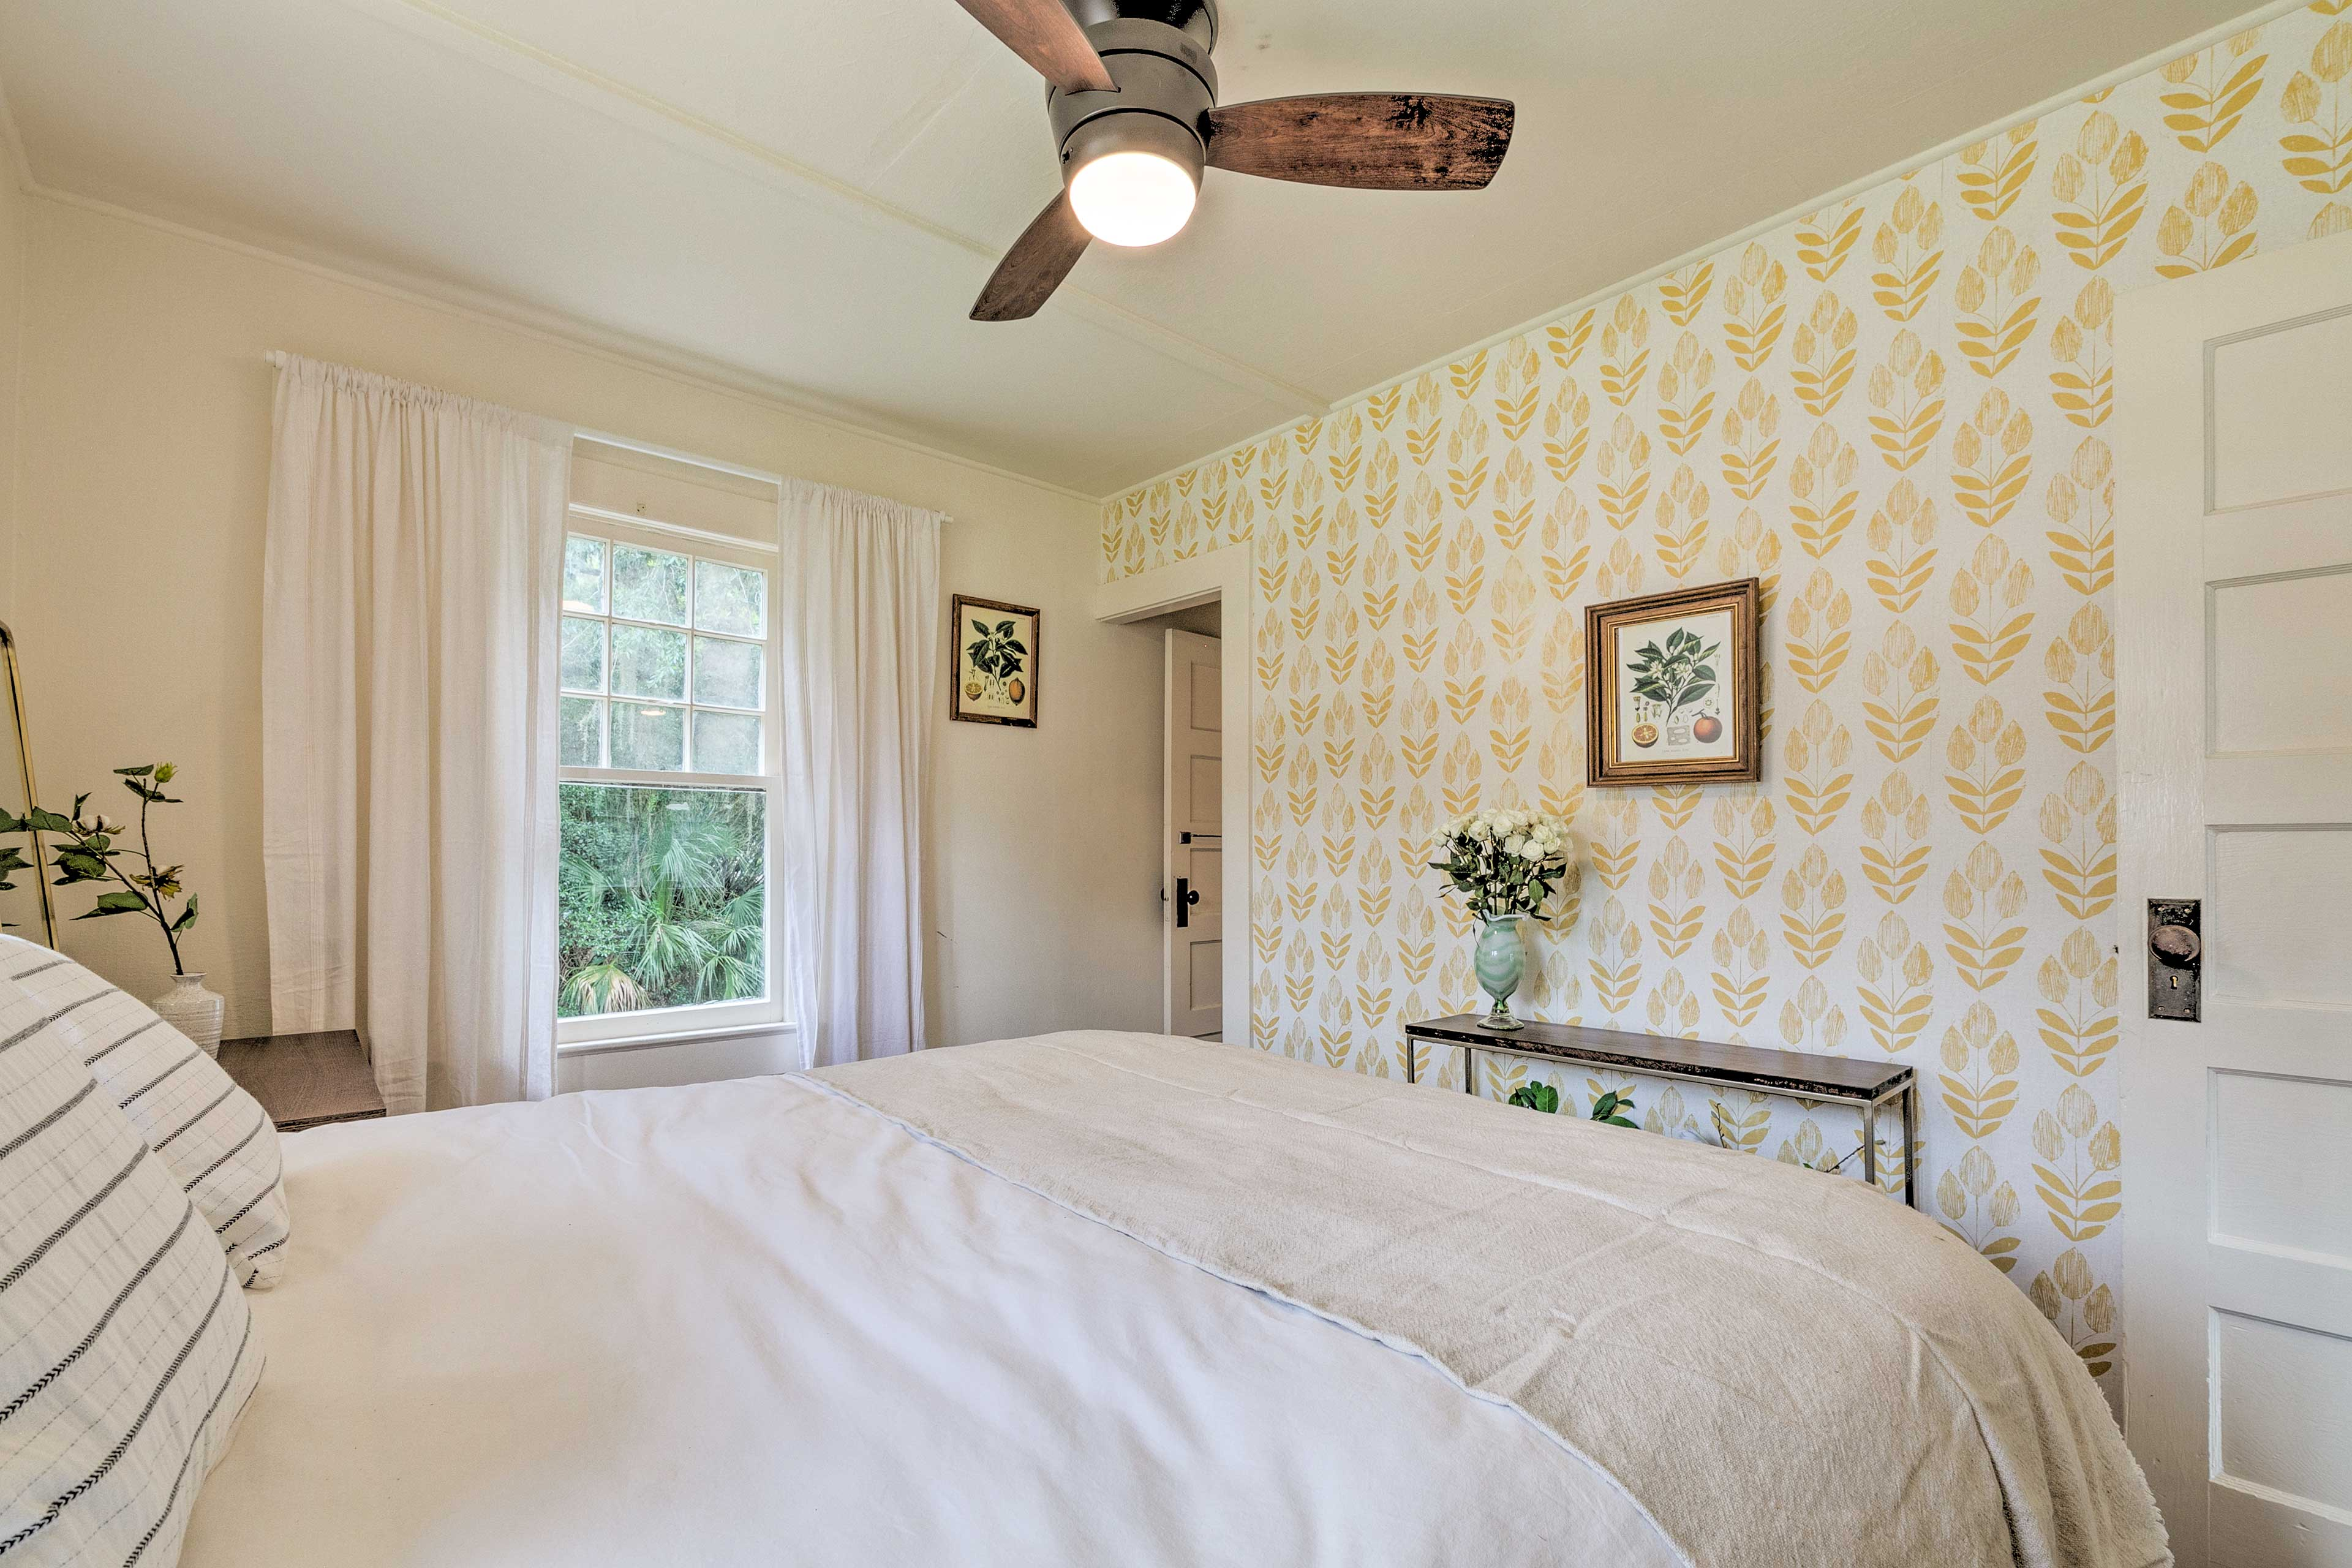 The queen bed will be more than inviting when you're ready to retire.